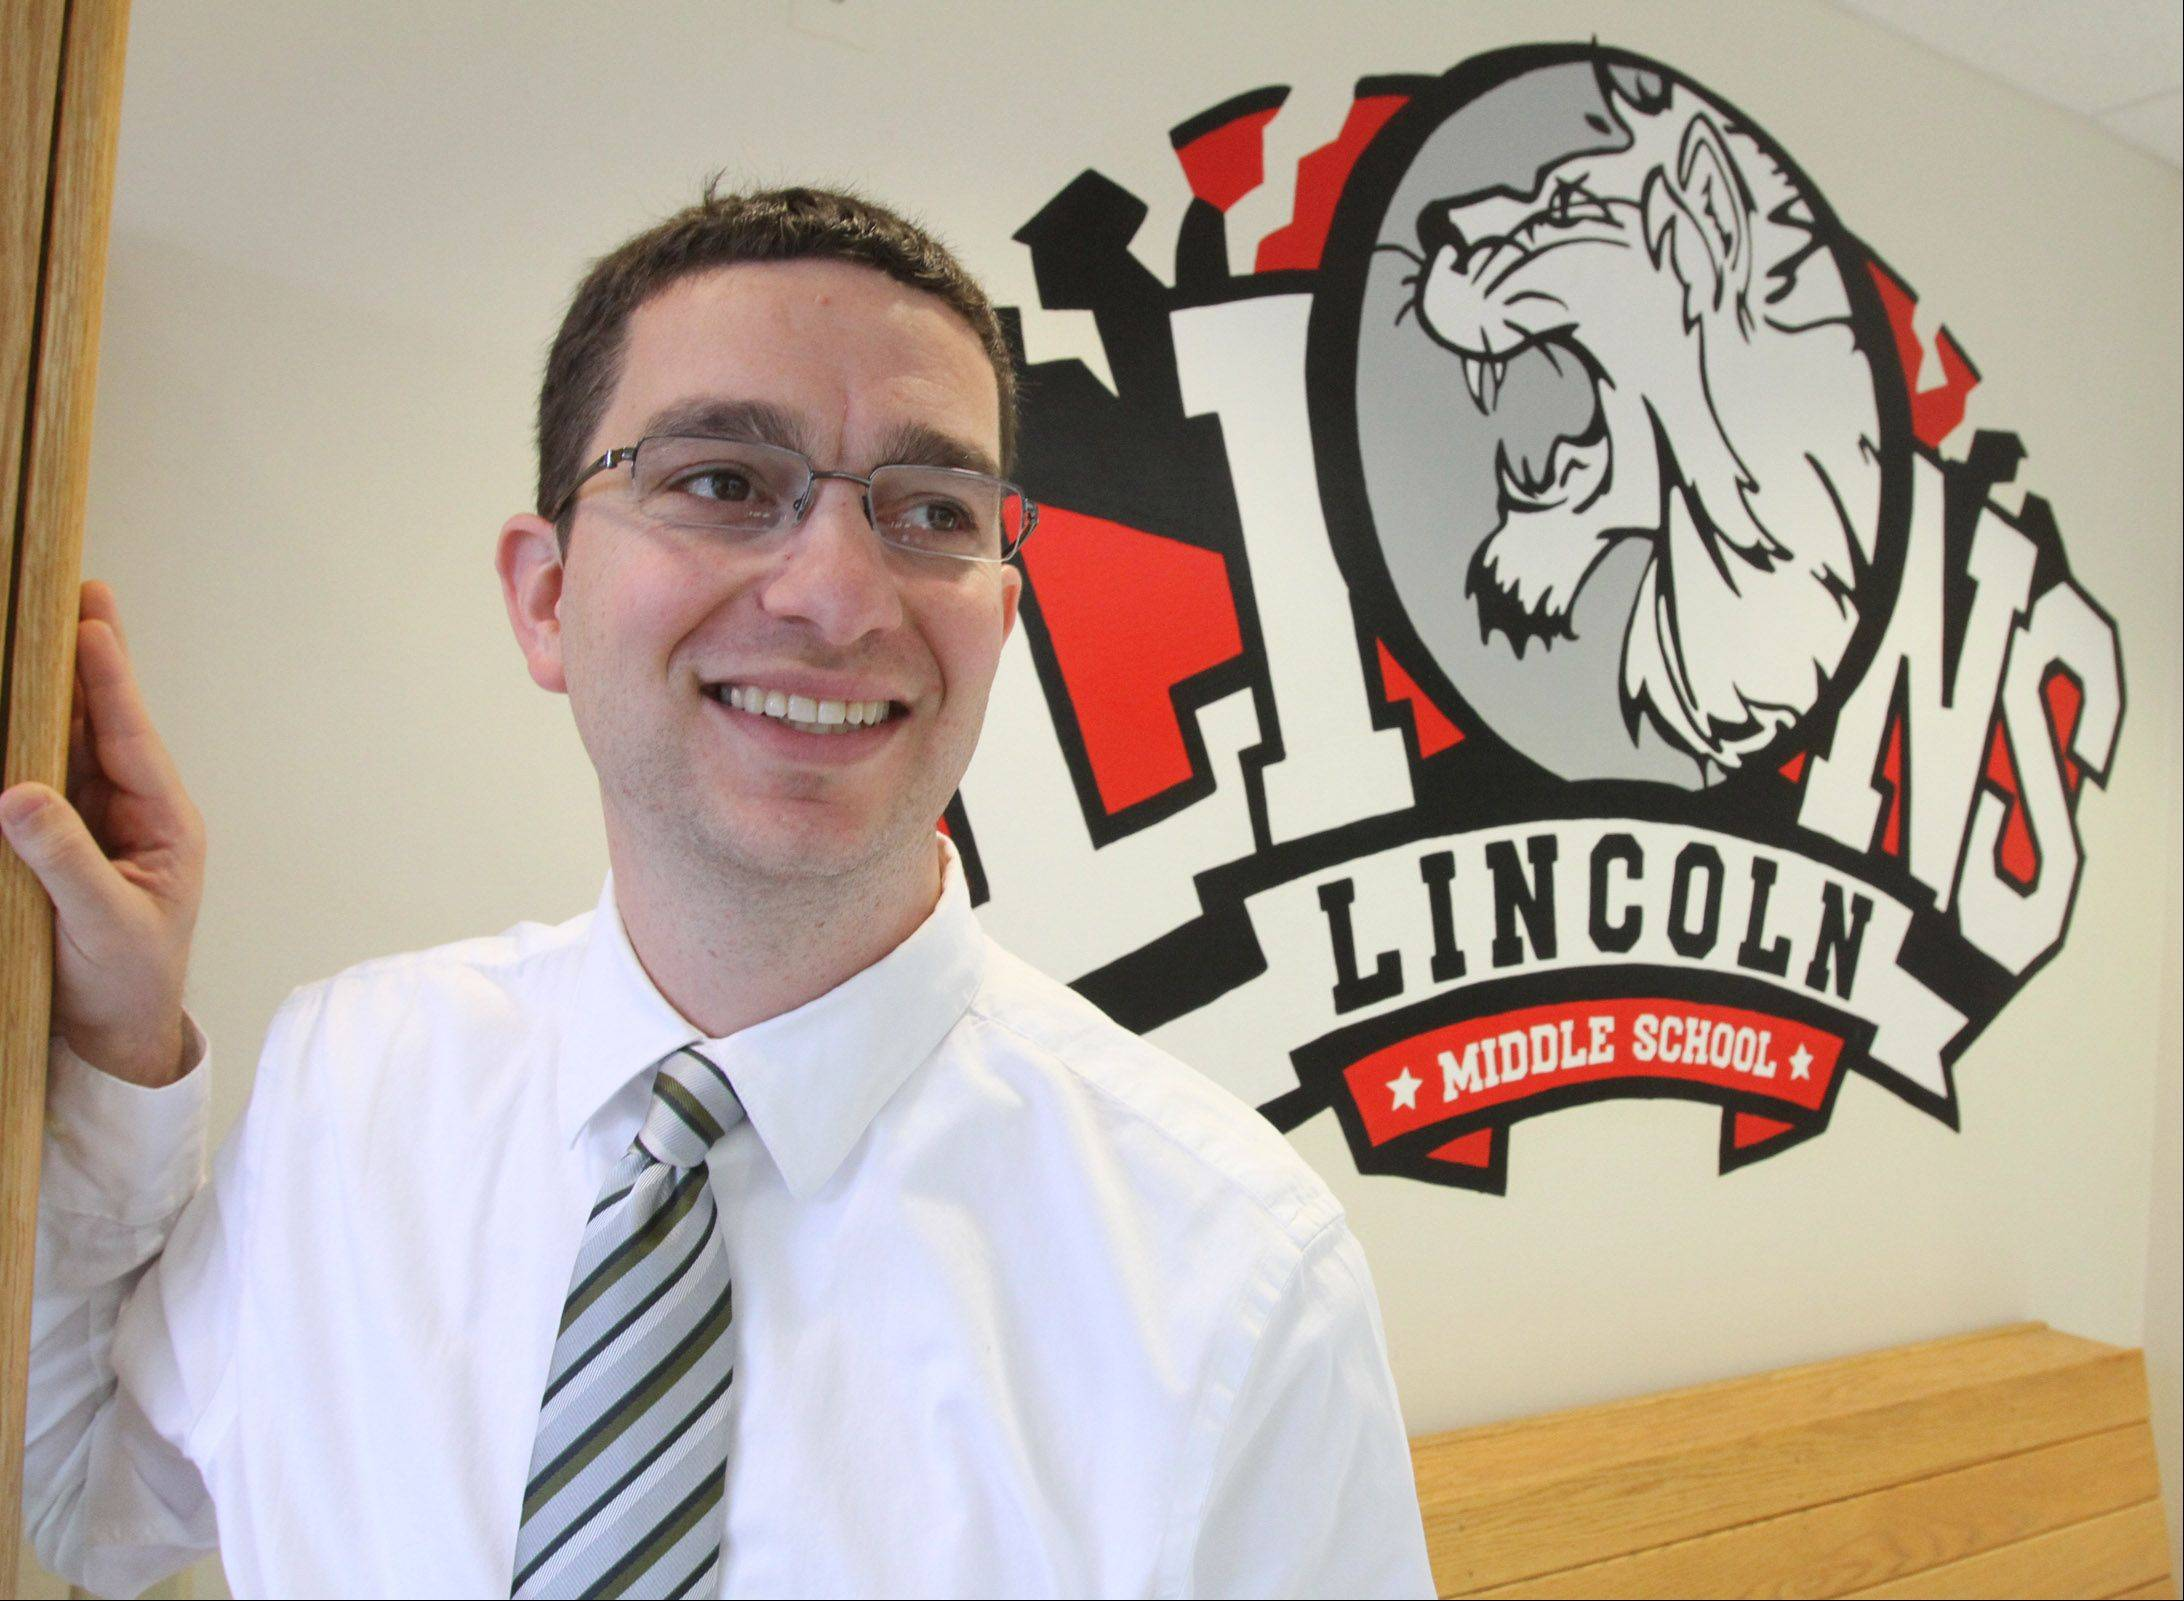 Jason Kaiz is the new principal of Lincoln Middle School in Mount Prospect.